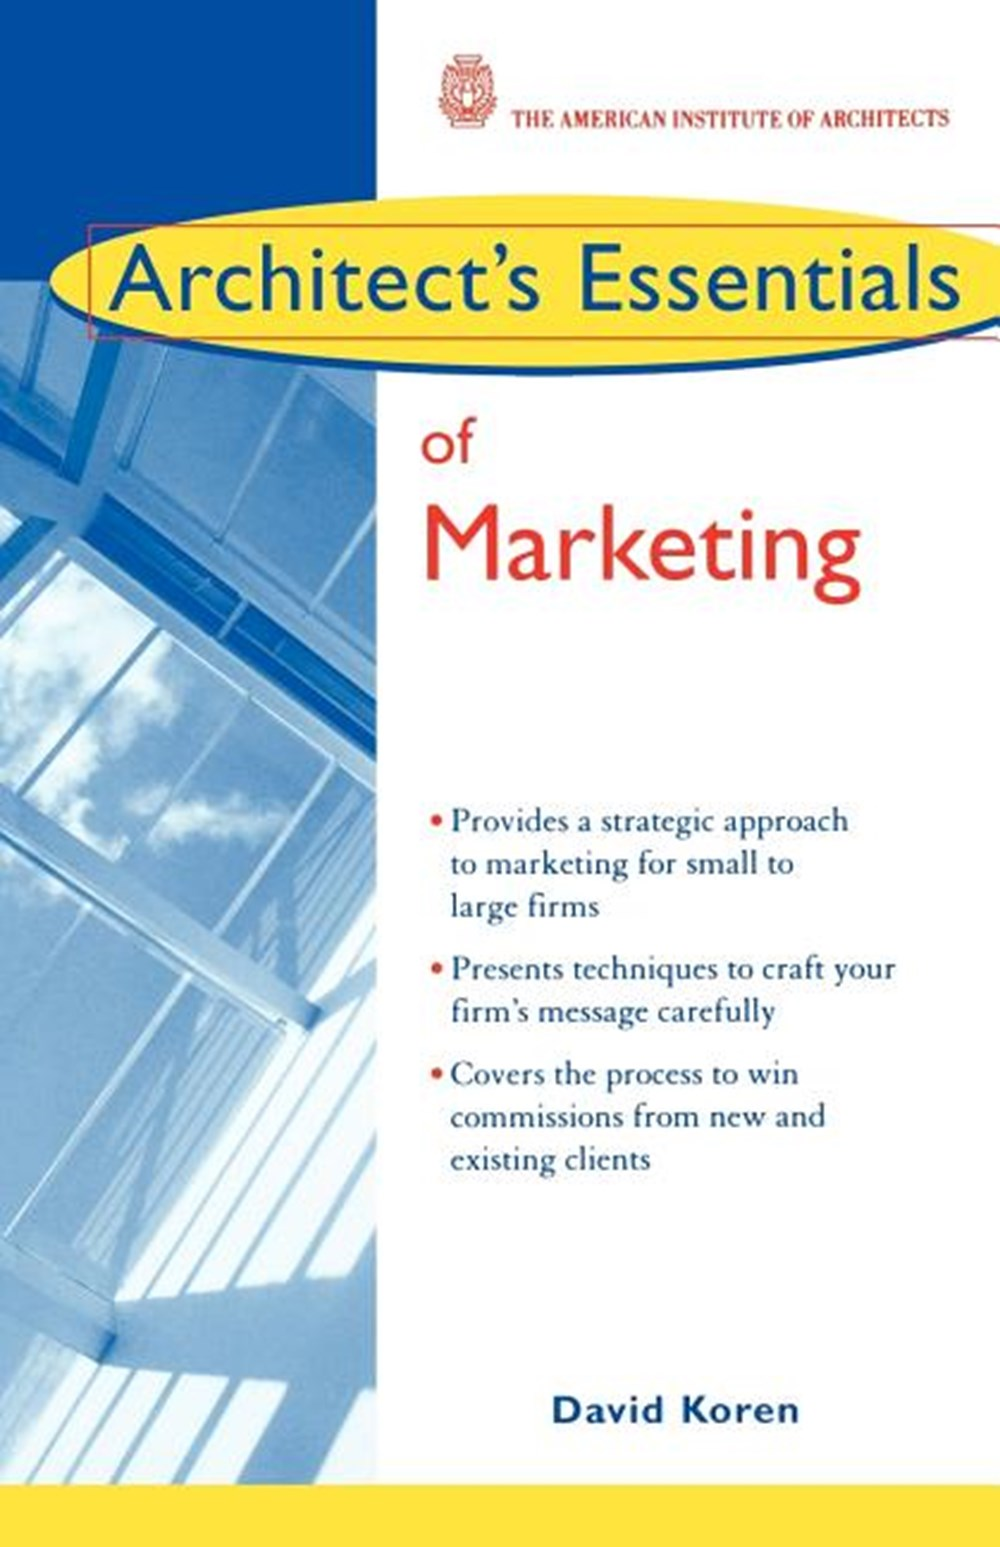 Architect's Essentials of Marketing